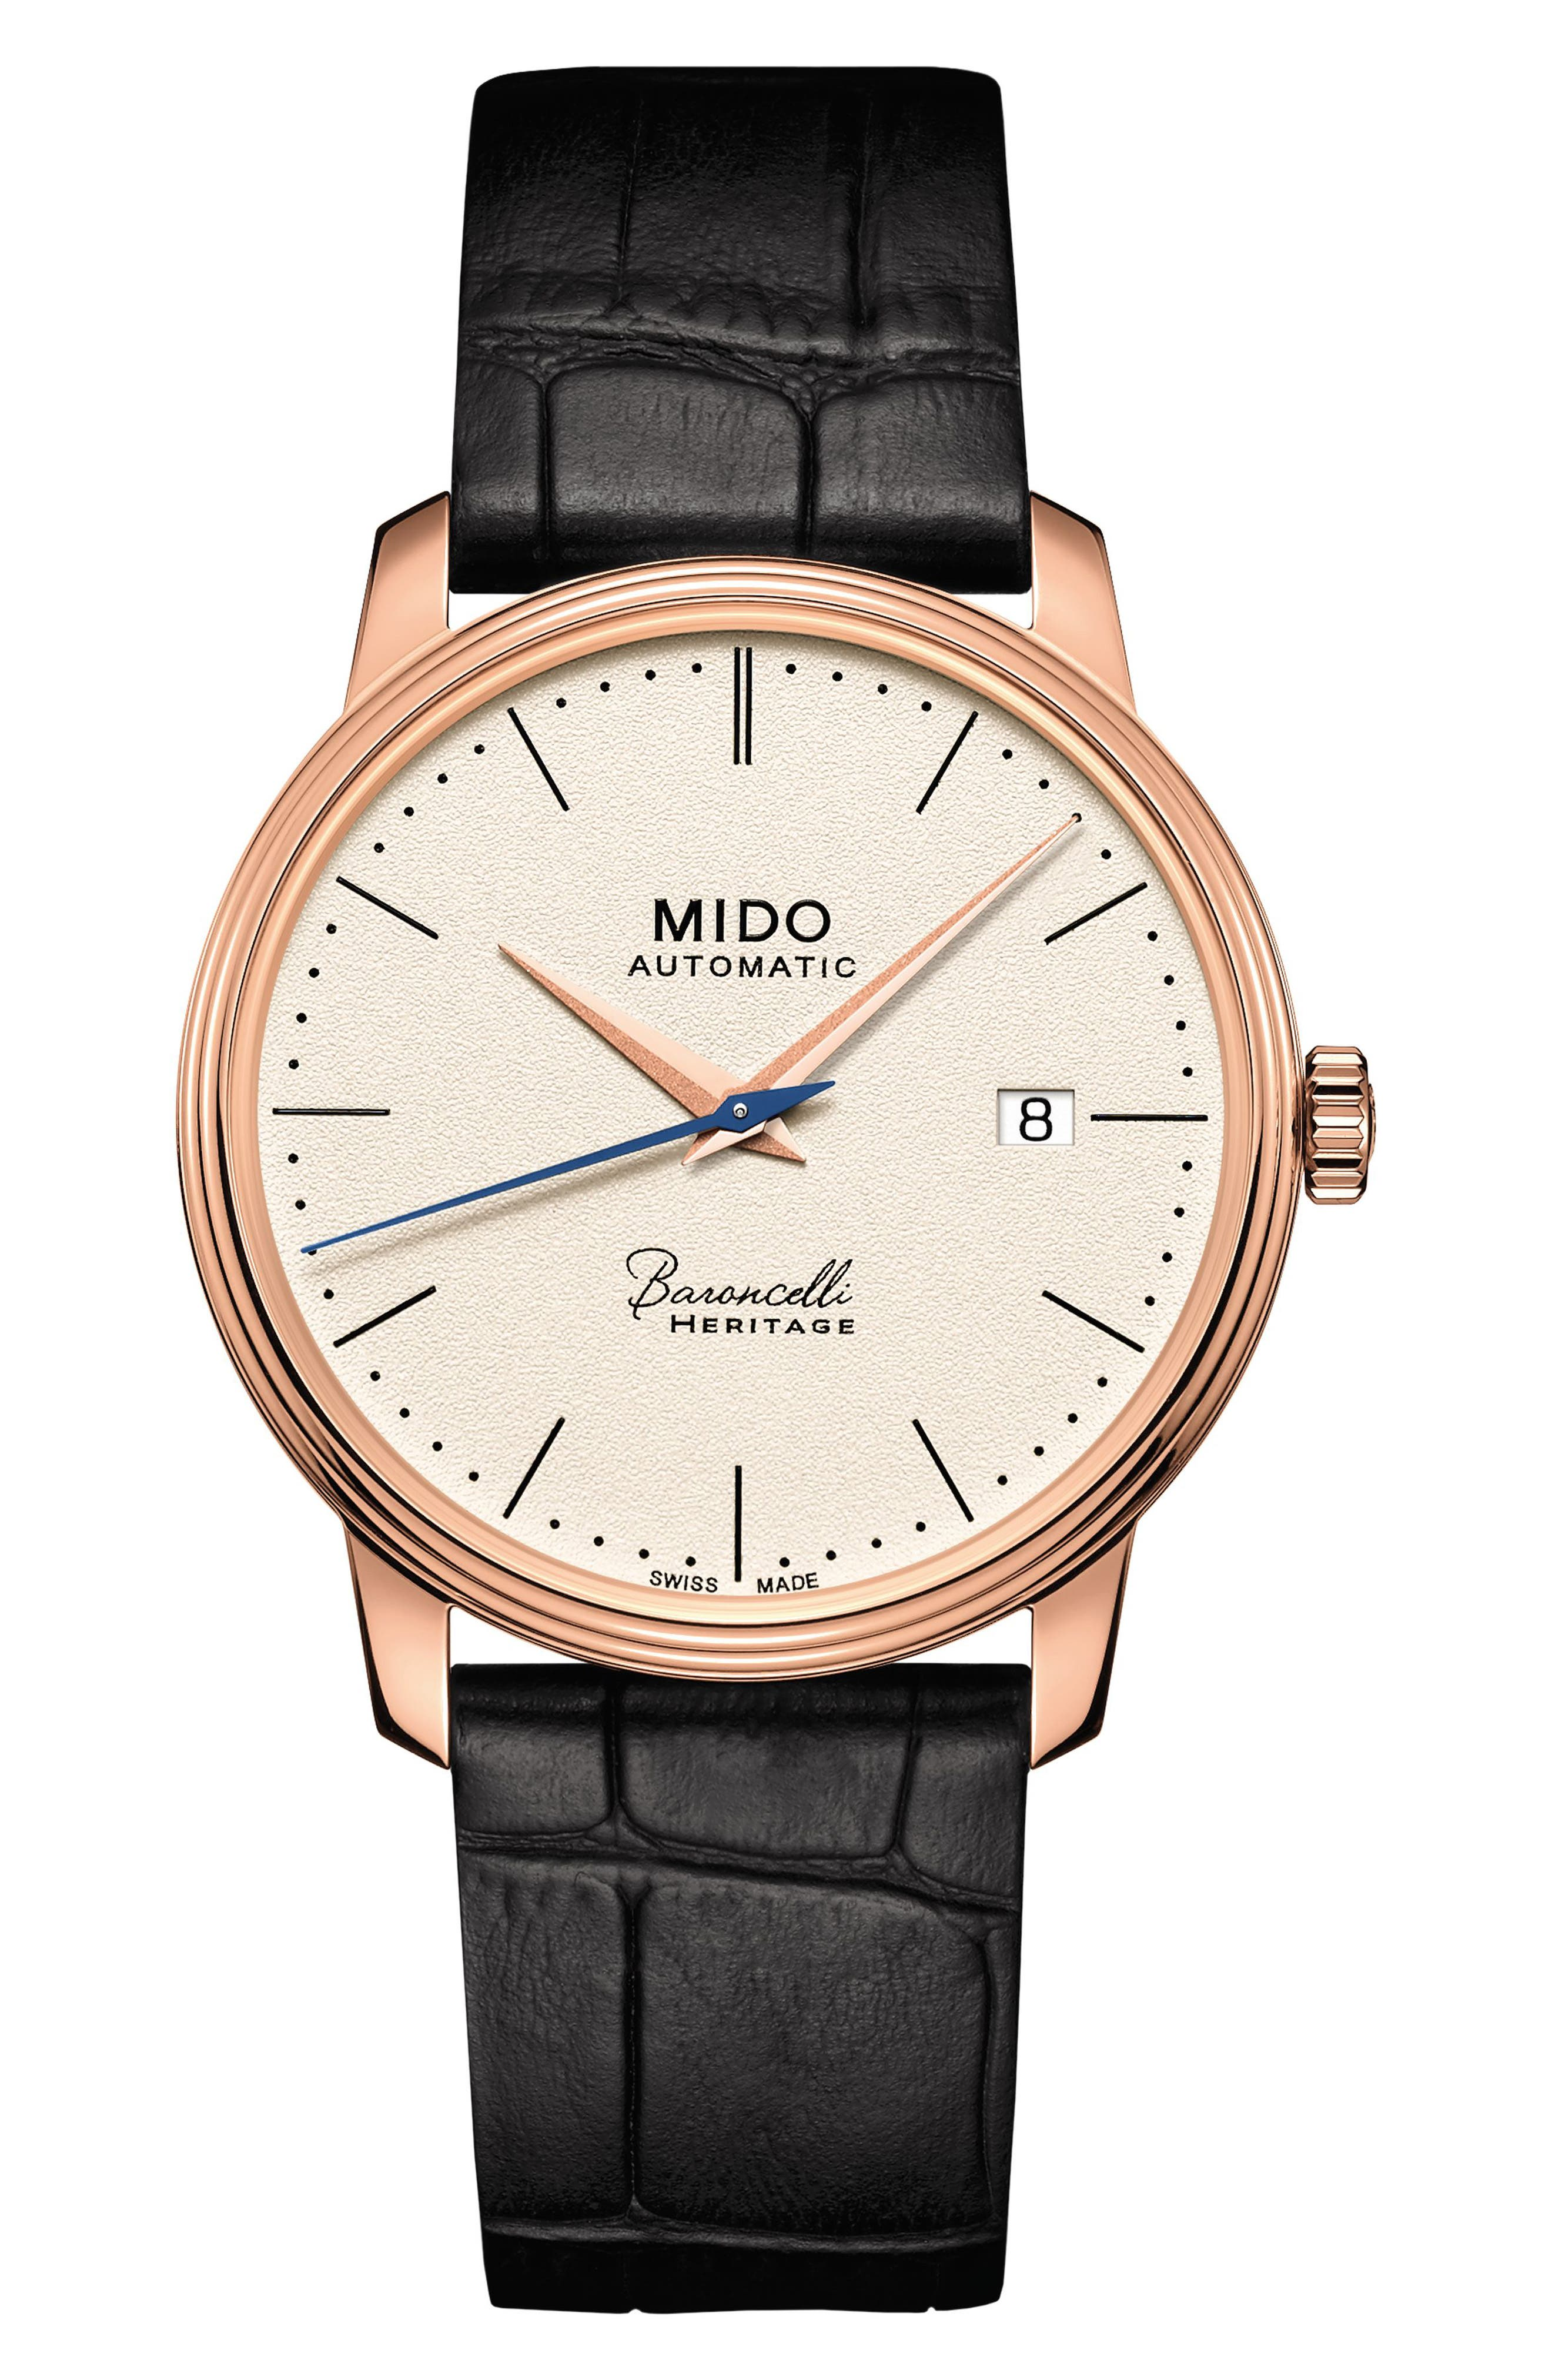 Baroncelli Heritage Automatic Leather Strap Watch, 39mm,                         Main,                         color, Black/ Tan/ Rose Gold